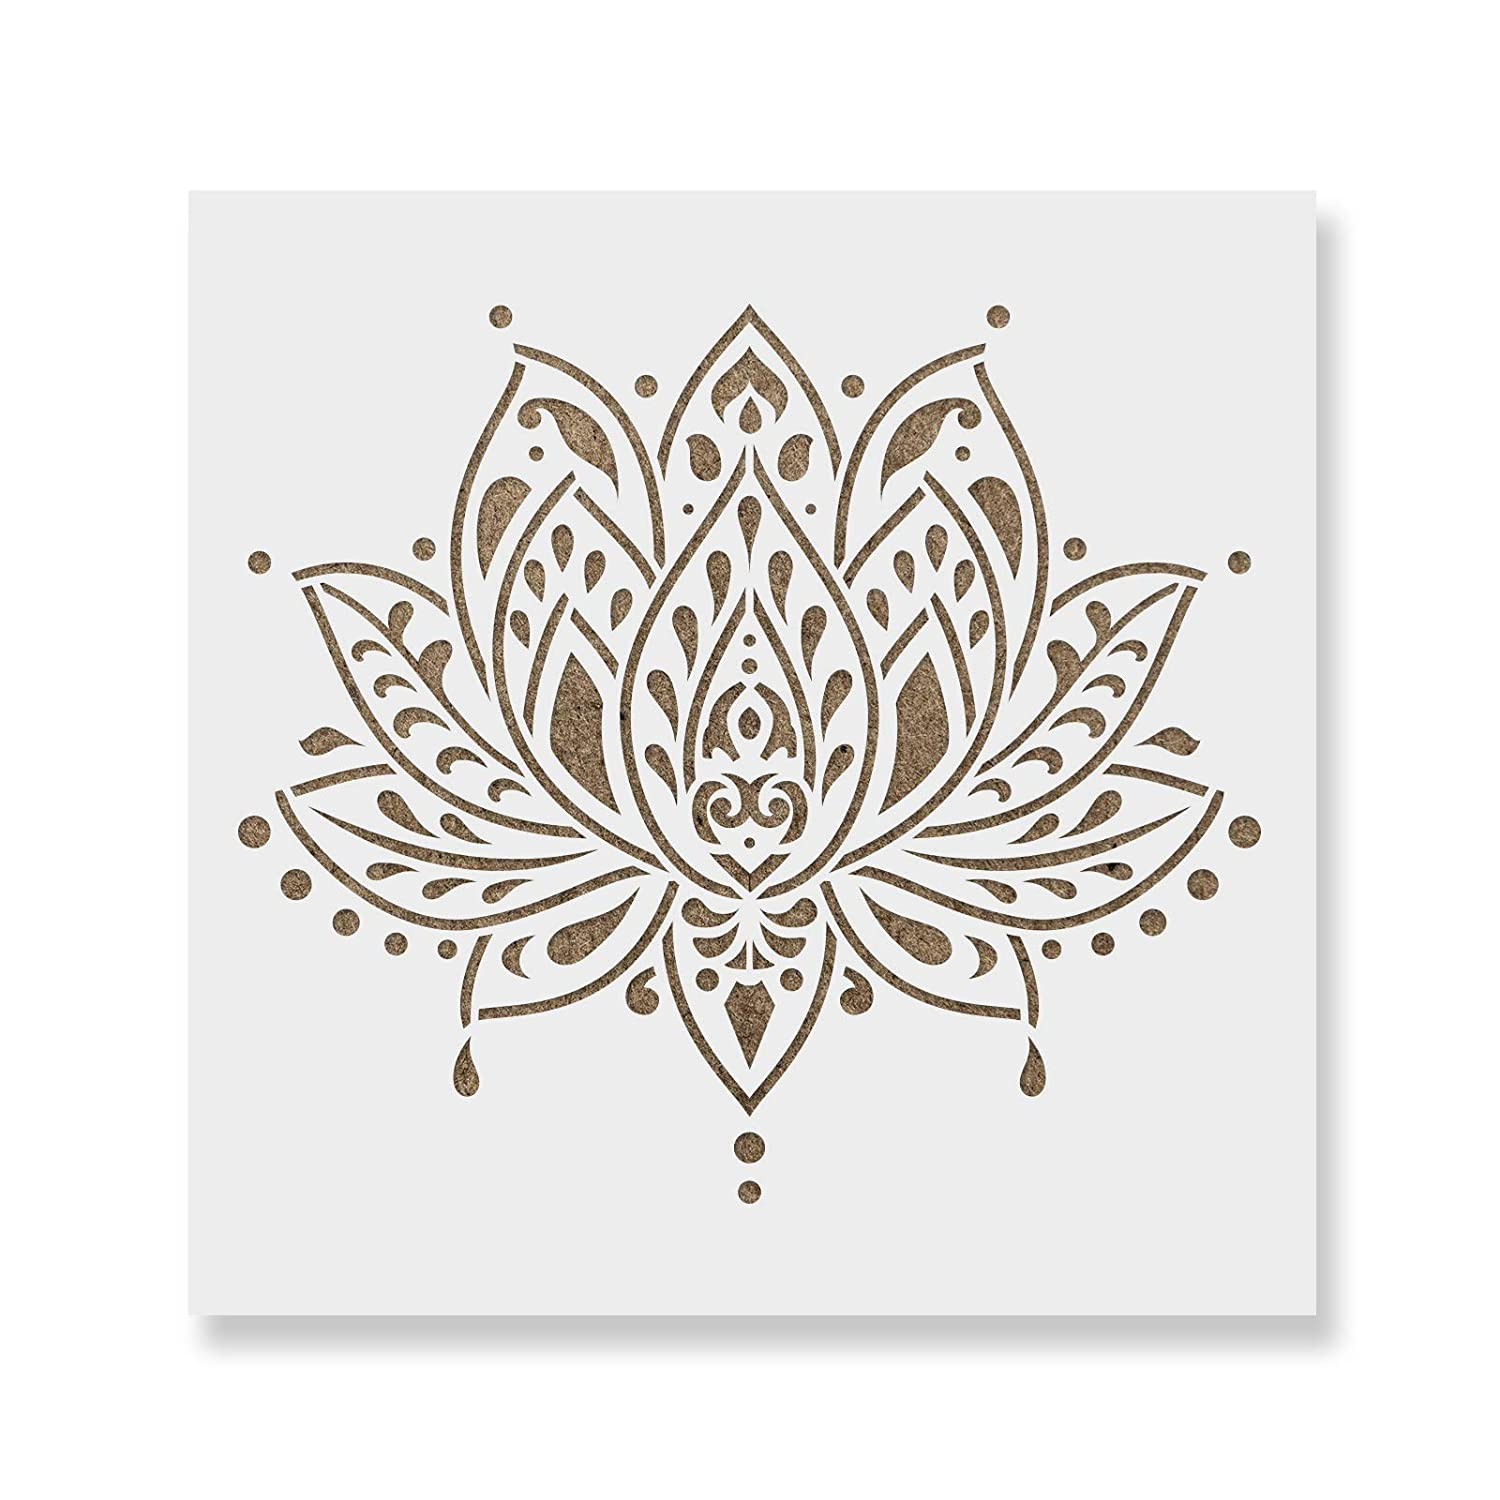 Sacred Lotus Flower Stencil Template for Walls and Crafts - Reusable Stencils for Painting in Small & Large Sizes Stencil Revolution 4336891148